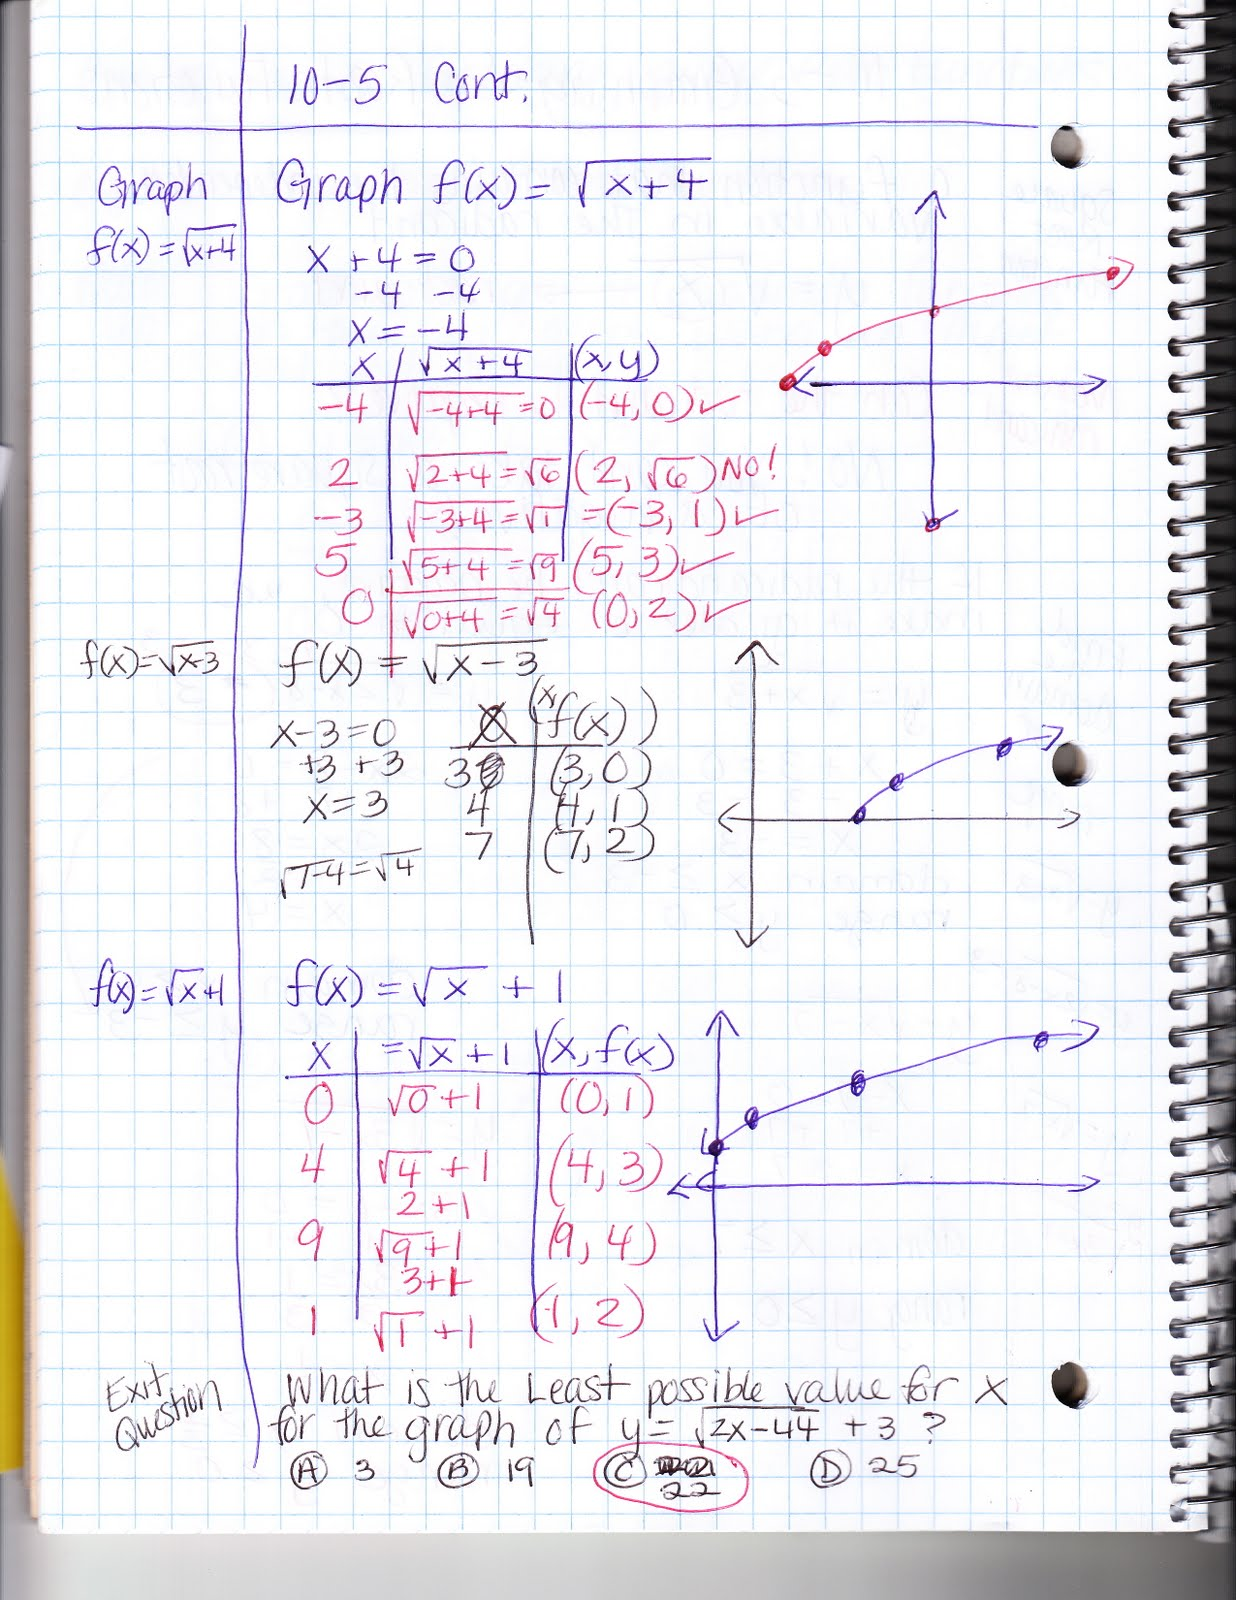 ms. jean's classroom blog: 10-5 graphing square root functions